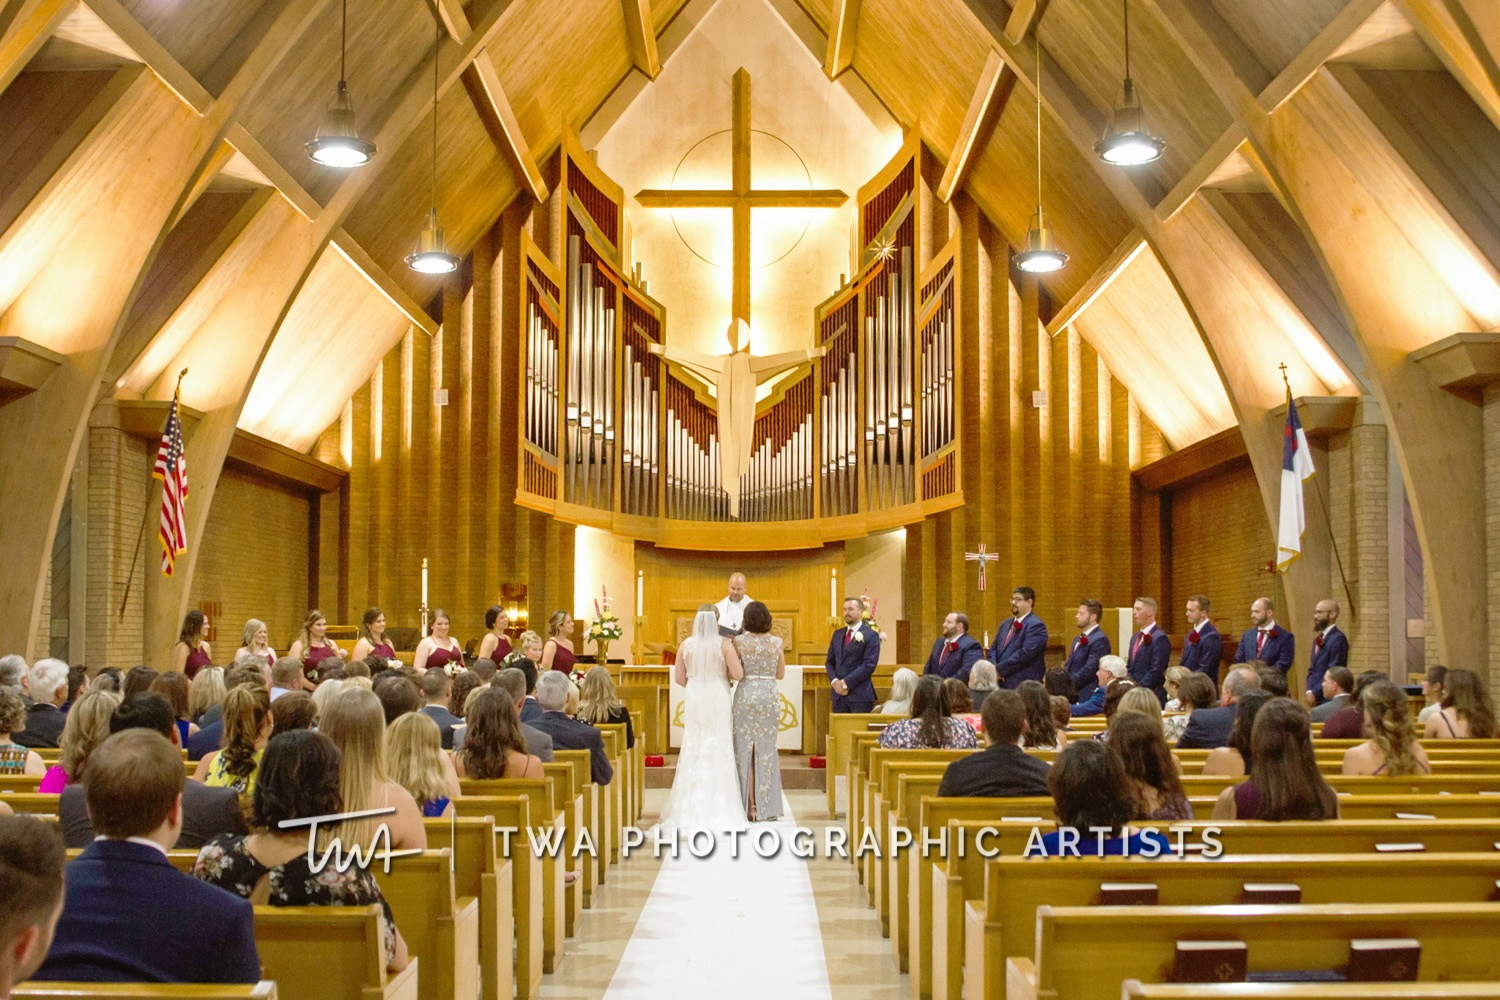 Chicago-Wedding-Photographer-TWA-Photographic-Artists-White-Pines-Banquets_Petersen_Sherman_ZZ_DL-034_0862